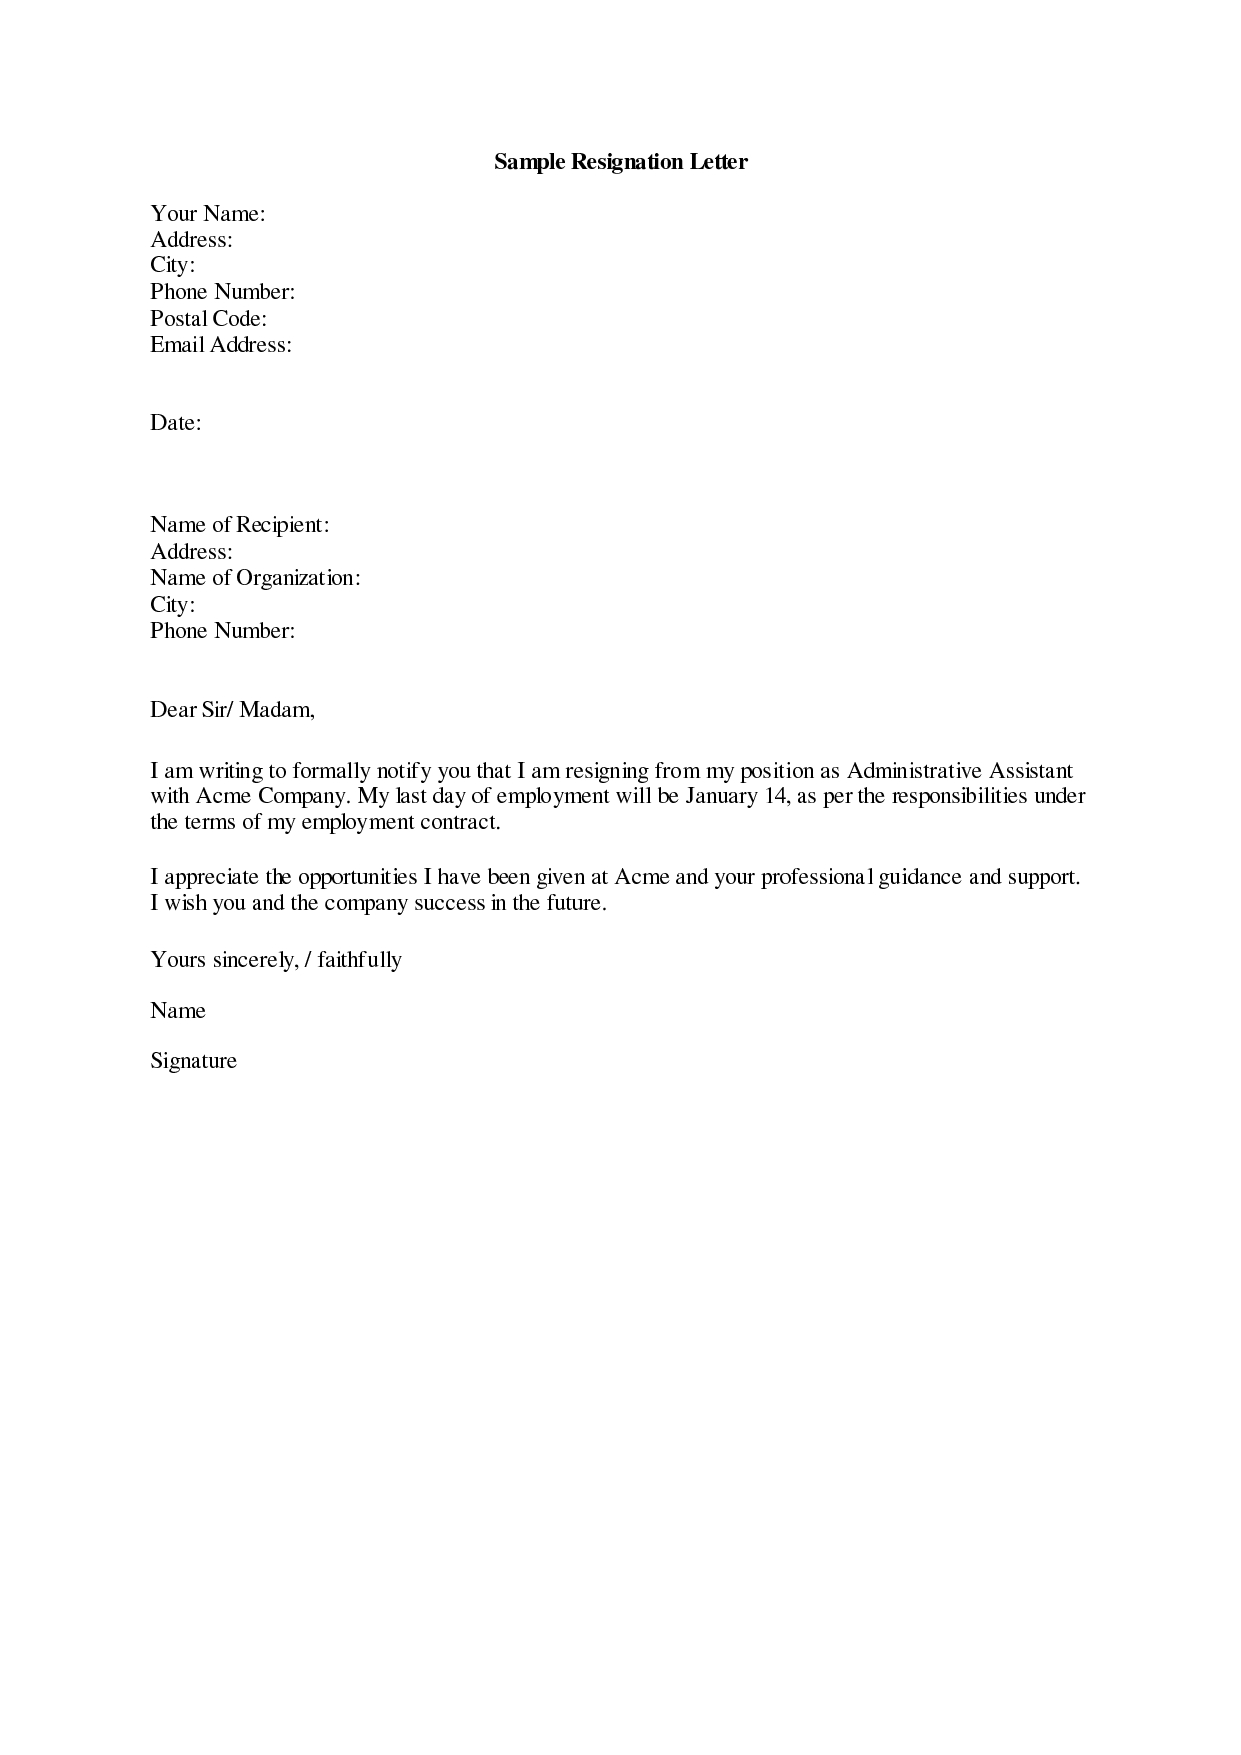 Resignation Letter Template Free Download - Resignation Letter Sample 19 Letter Of Resignation